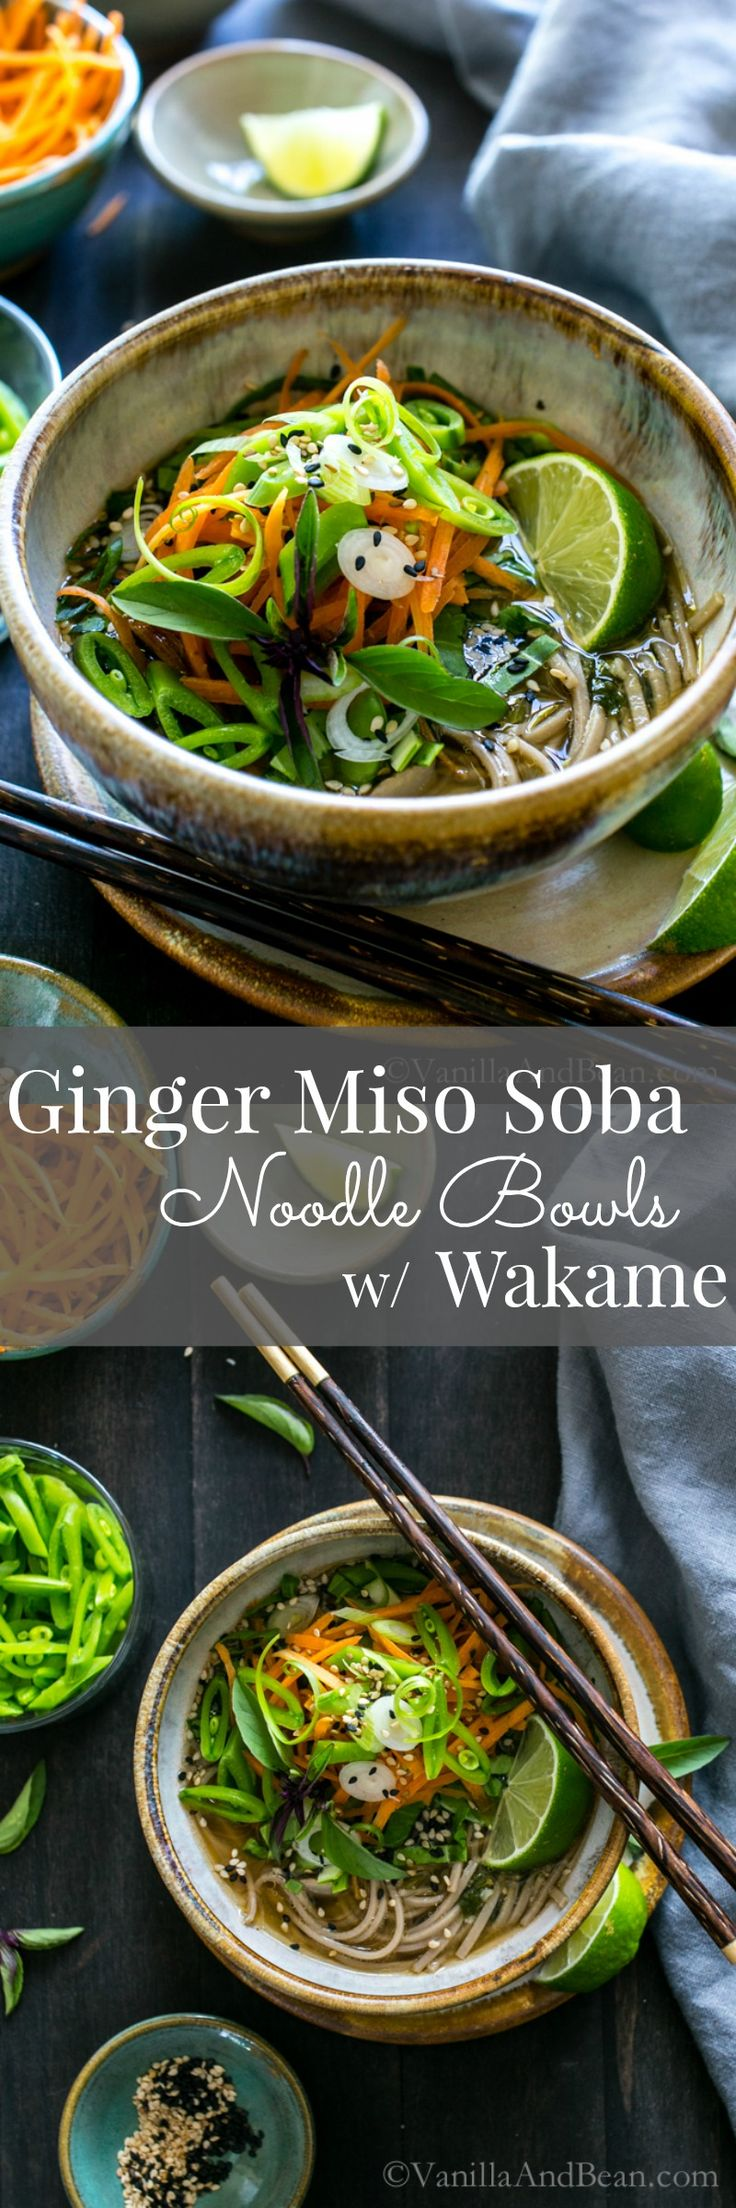 Warming and cozy, Ginger Miso Soba Noodle Bowls with Wakame are so comforting and can be adapted by changing the veggies with the seasons. Vegan   GF